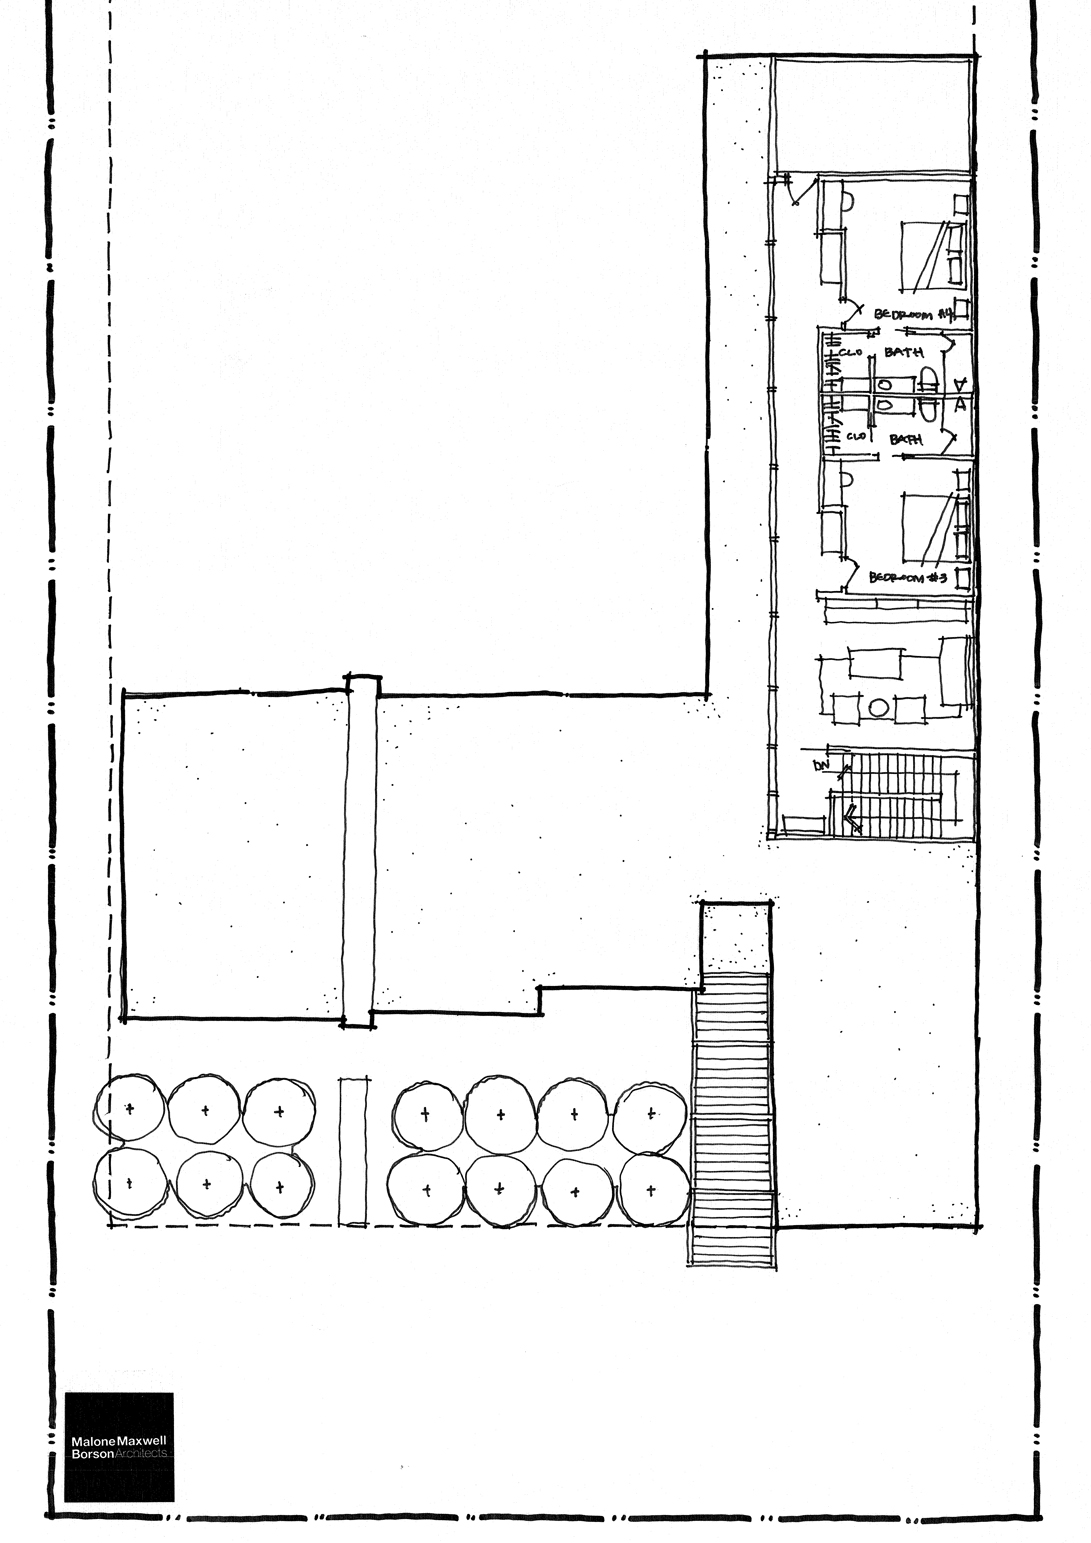 Bob Borson - Schematic Design Upper Floor Plan final